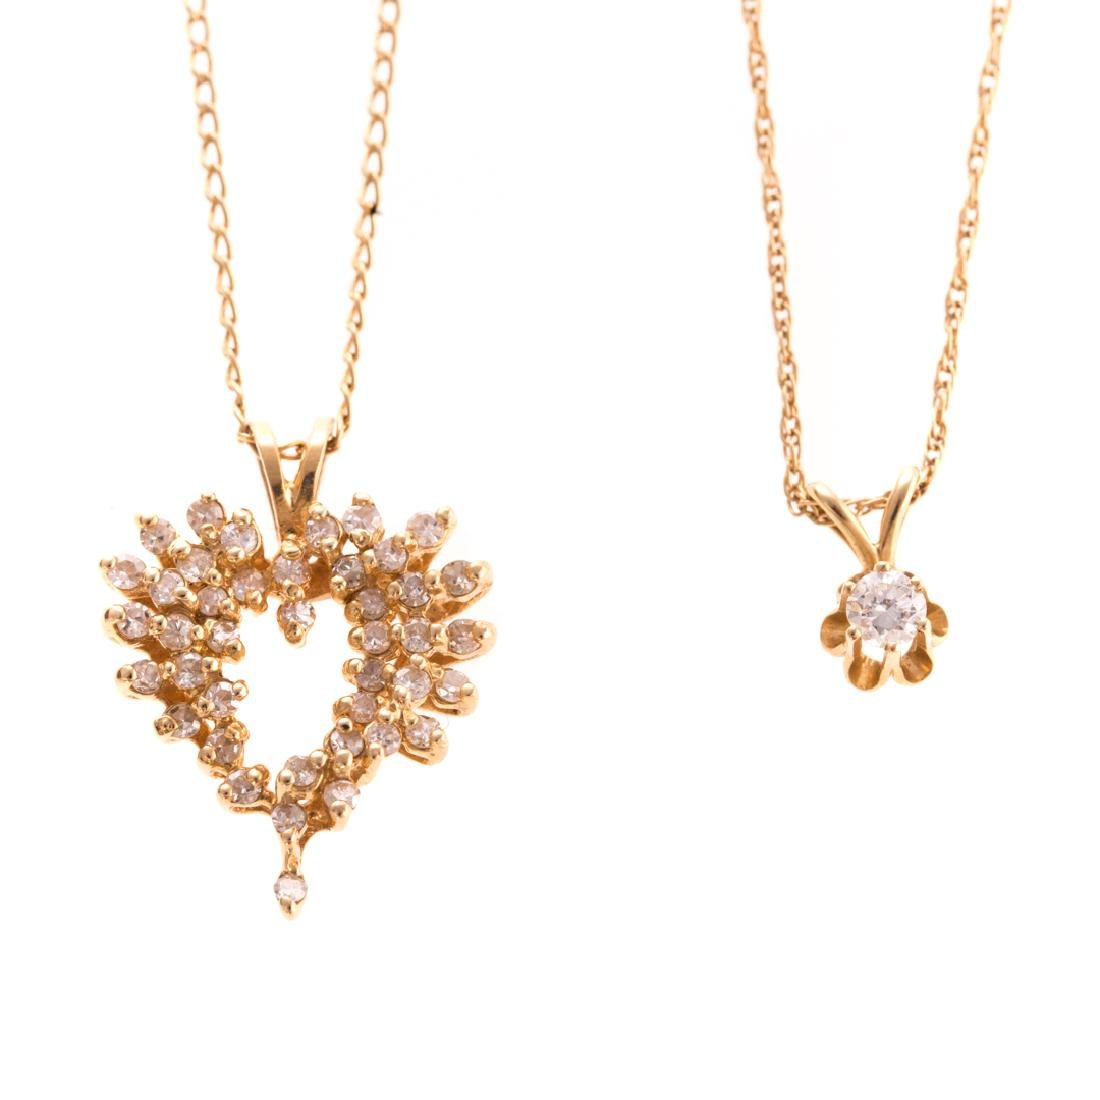 A Pair of 14K Diamond Pendants